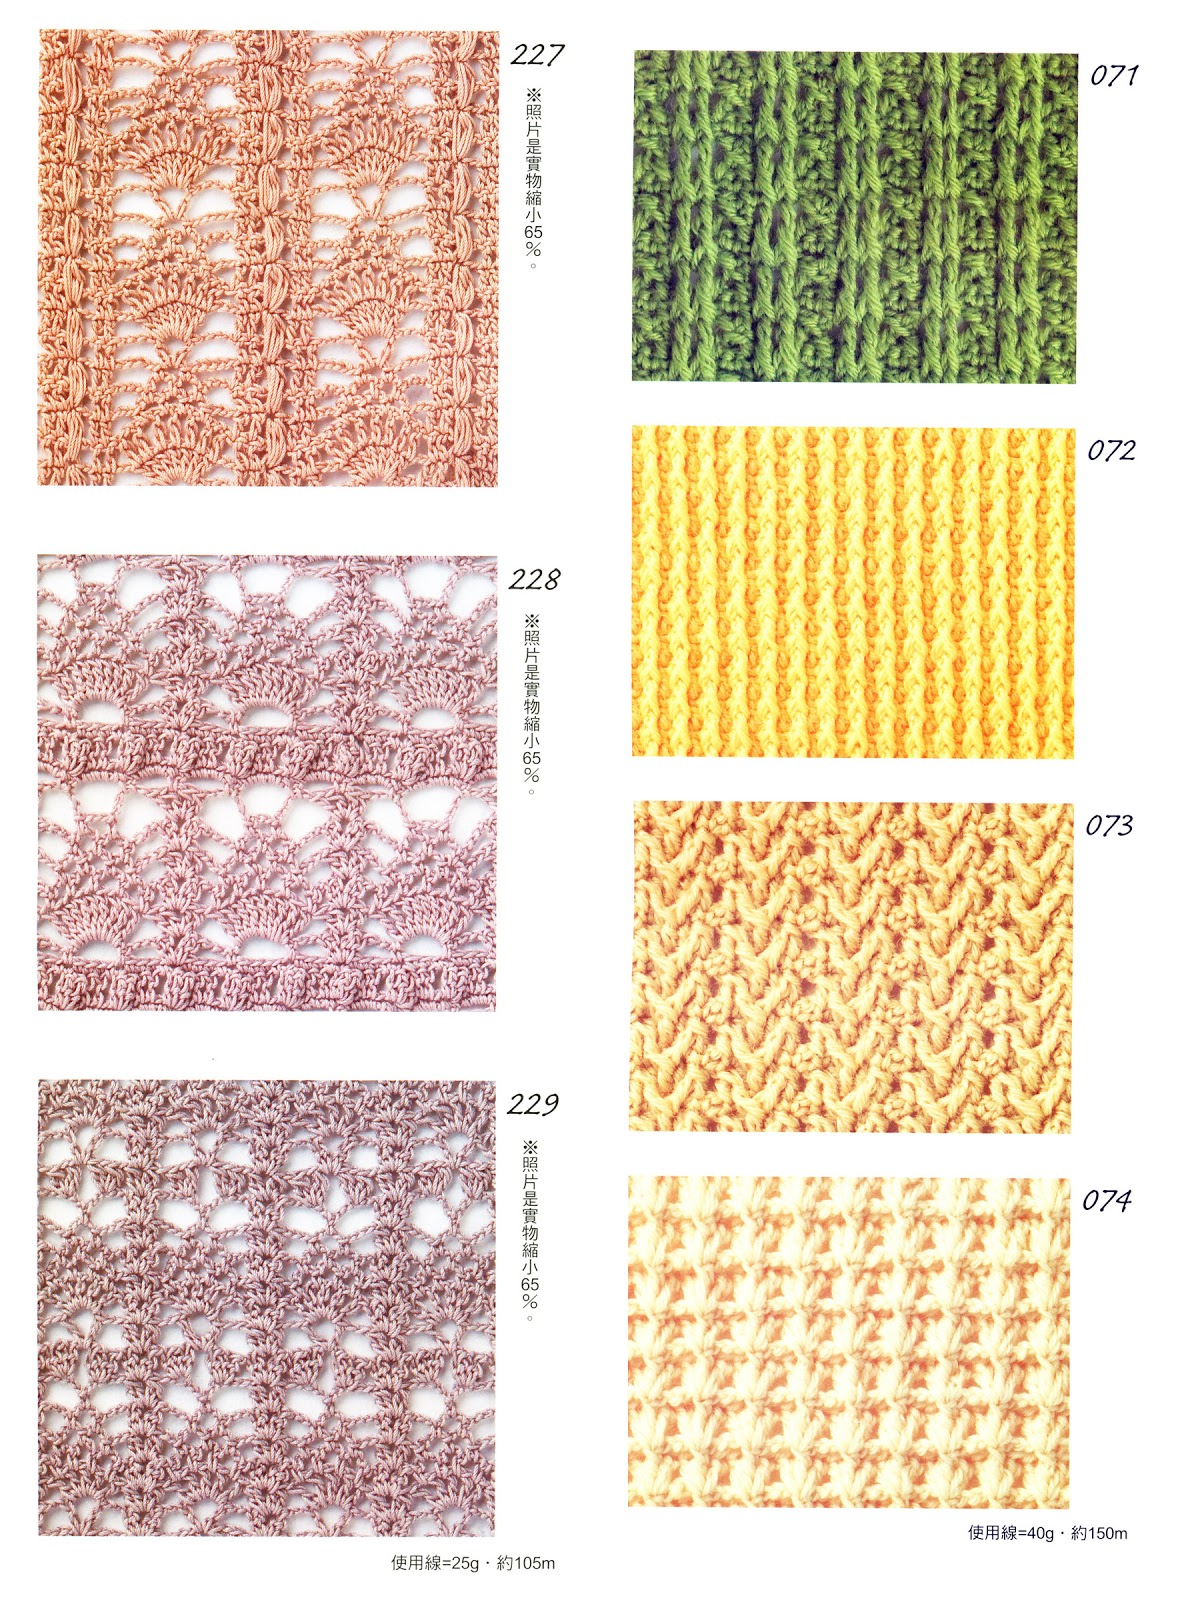 Crochet Stitches And Names : MyCreativeCard.com: Japanese Crochet 300 Stitches Guide Dictionary